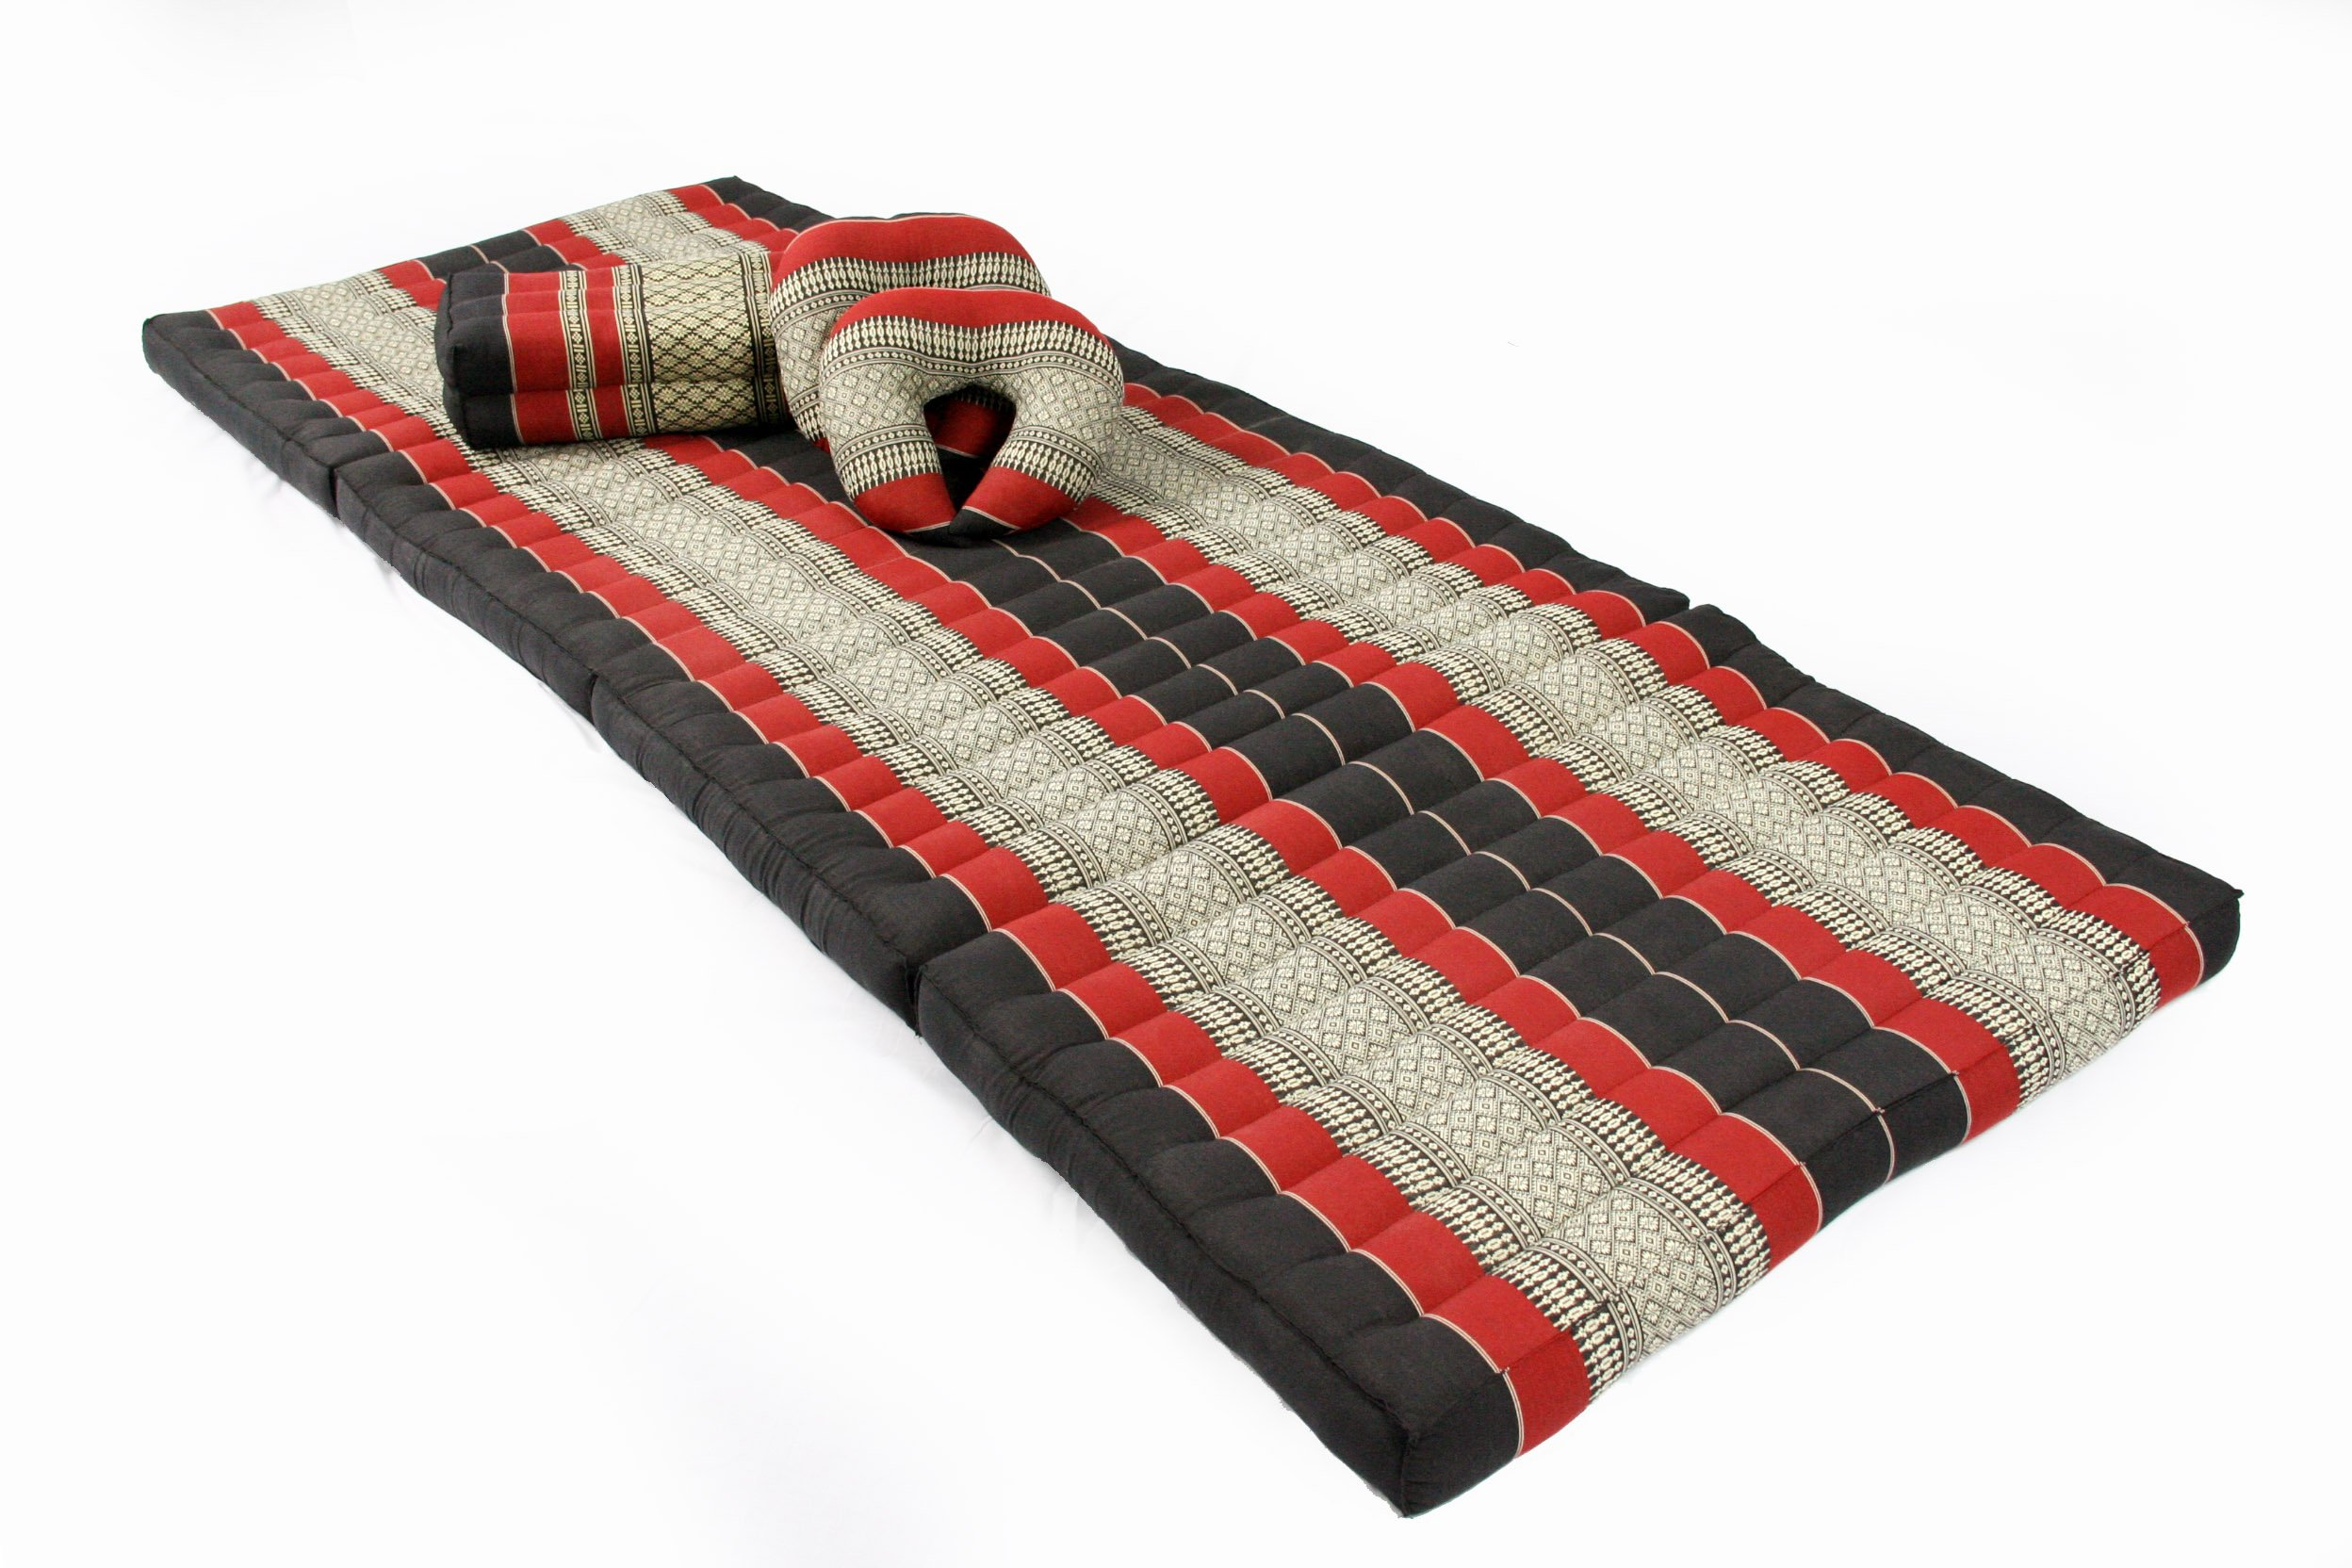 Thai Massage Set II: Foldable Matress 78x31 inches + 3 support cushions, Traditional Thai Design, kapok-filled, black/red by Handelsturm